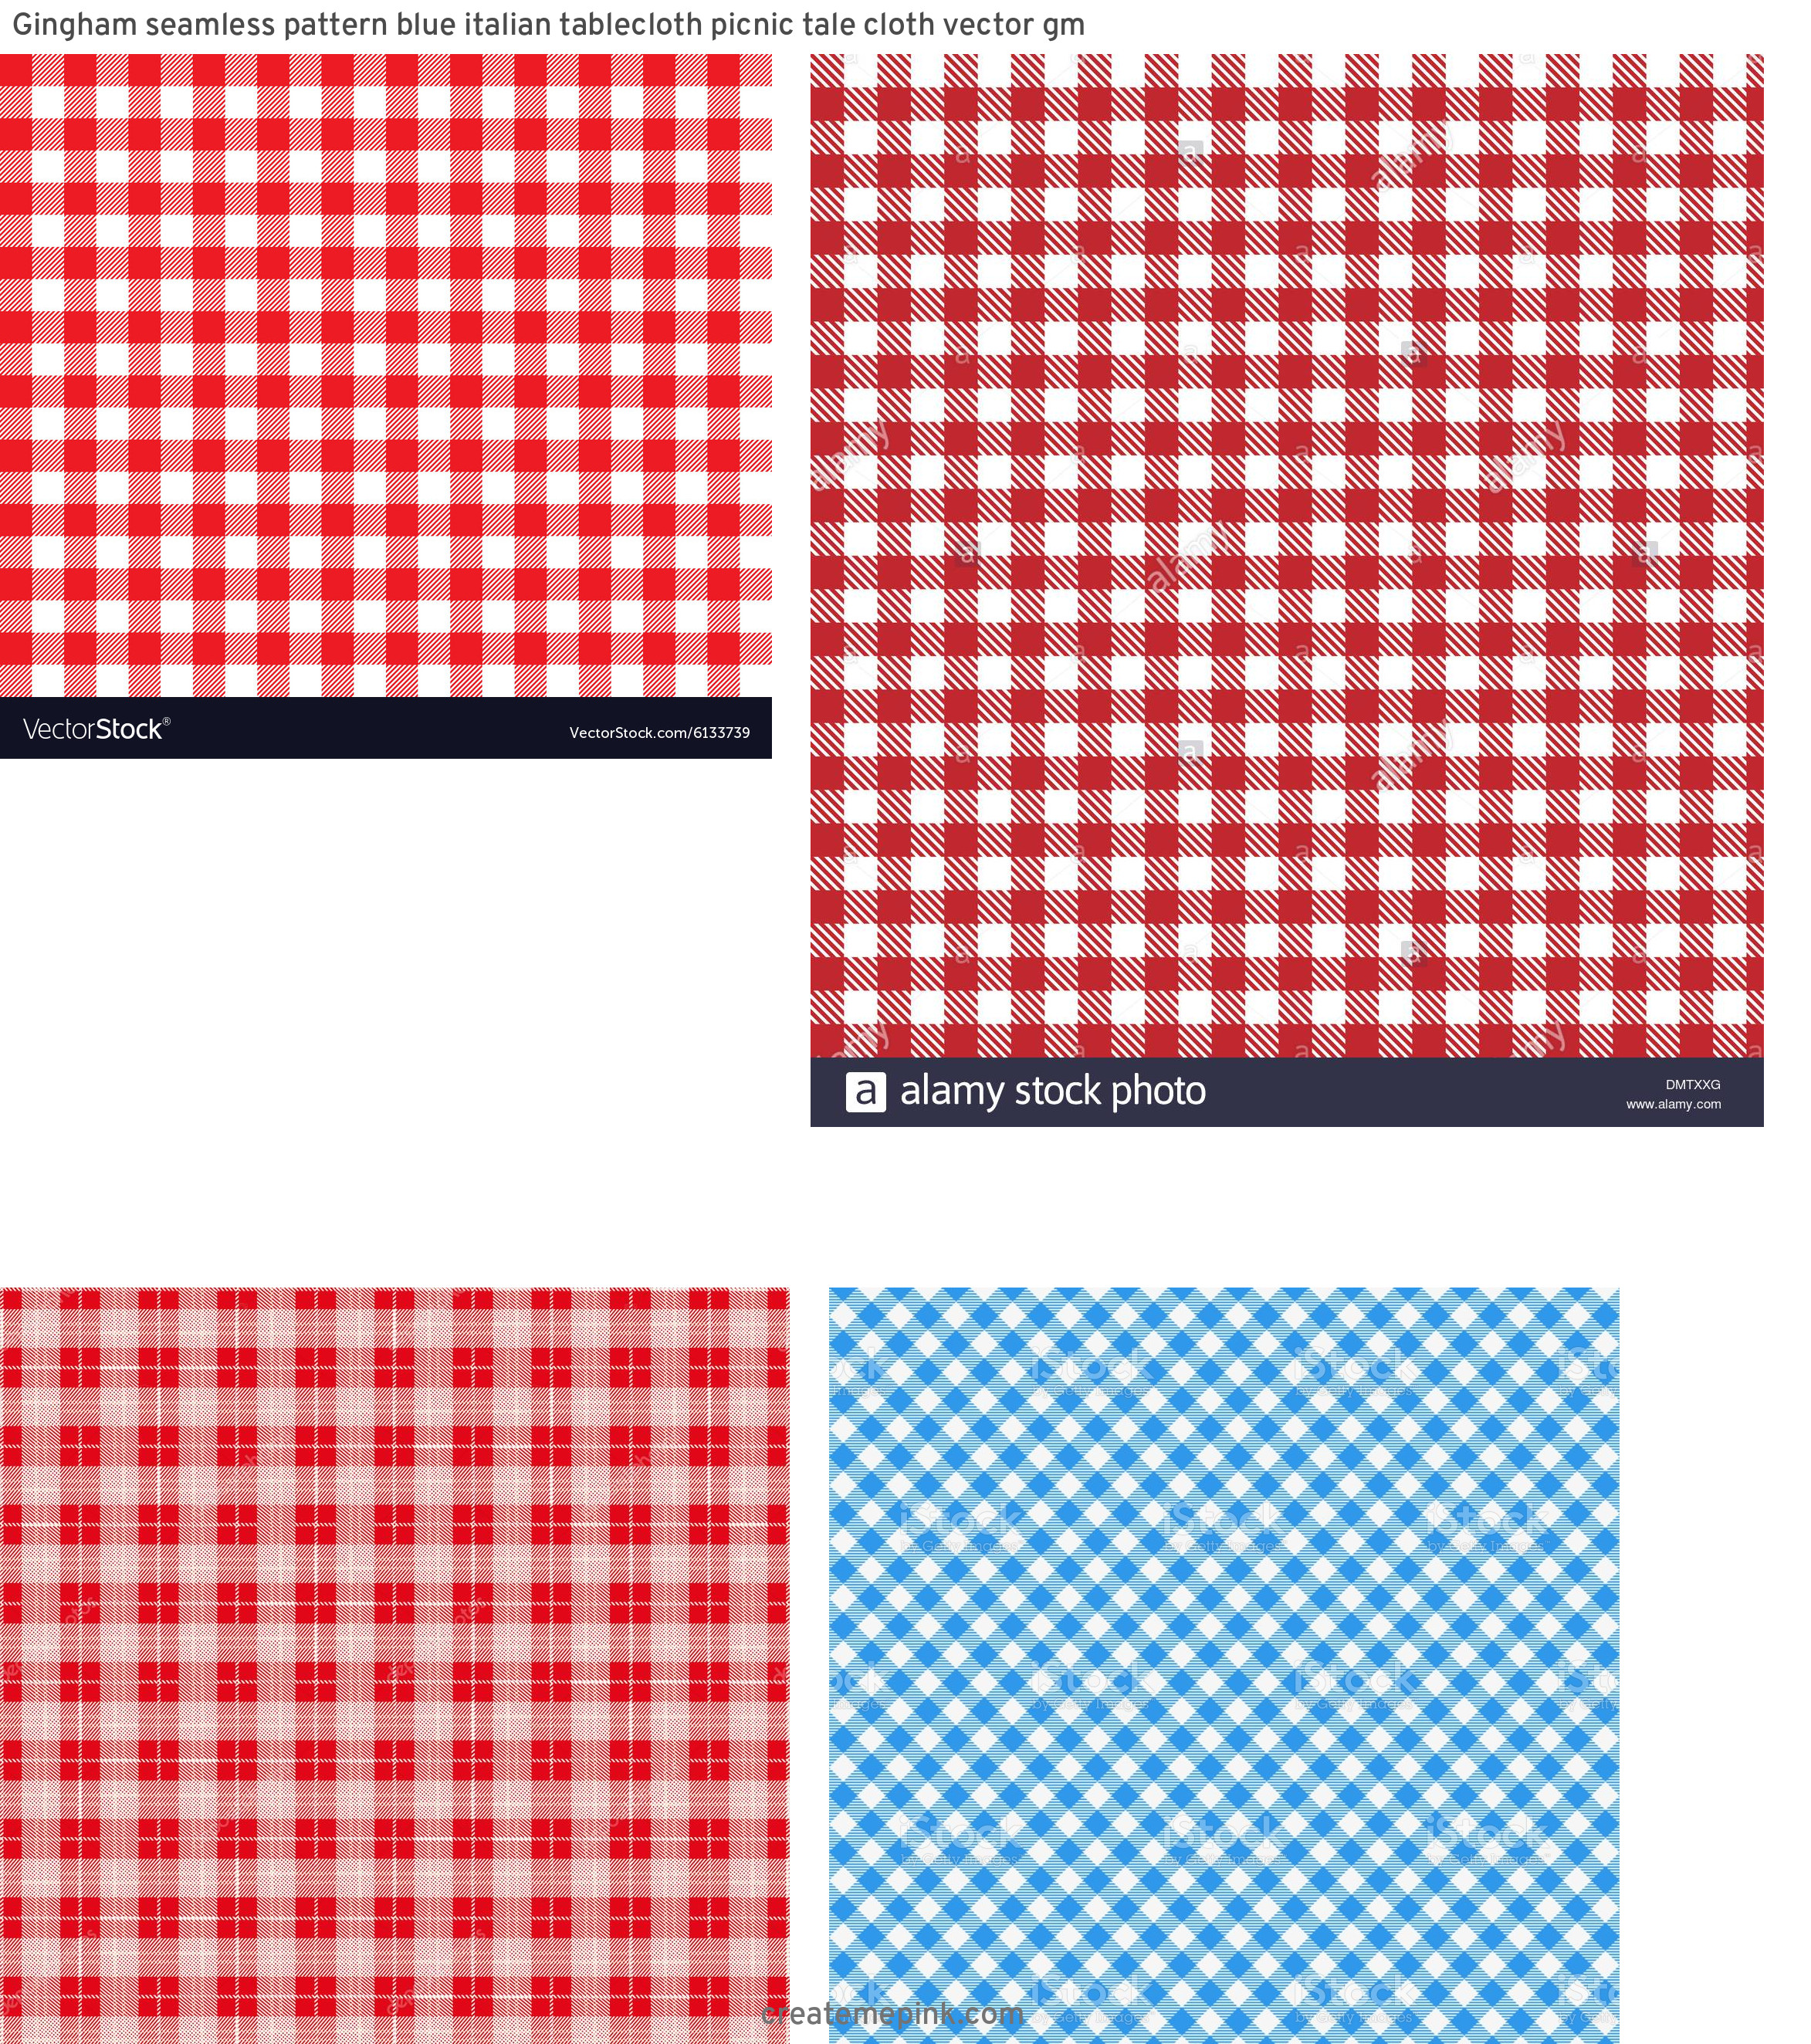 Picnic Cloth Vector: Gingham Seamless Pattern Blue Italian Tablecloth Picnic Tale Cloth Vector Gm